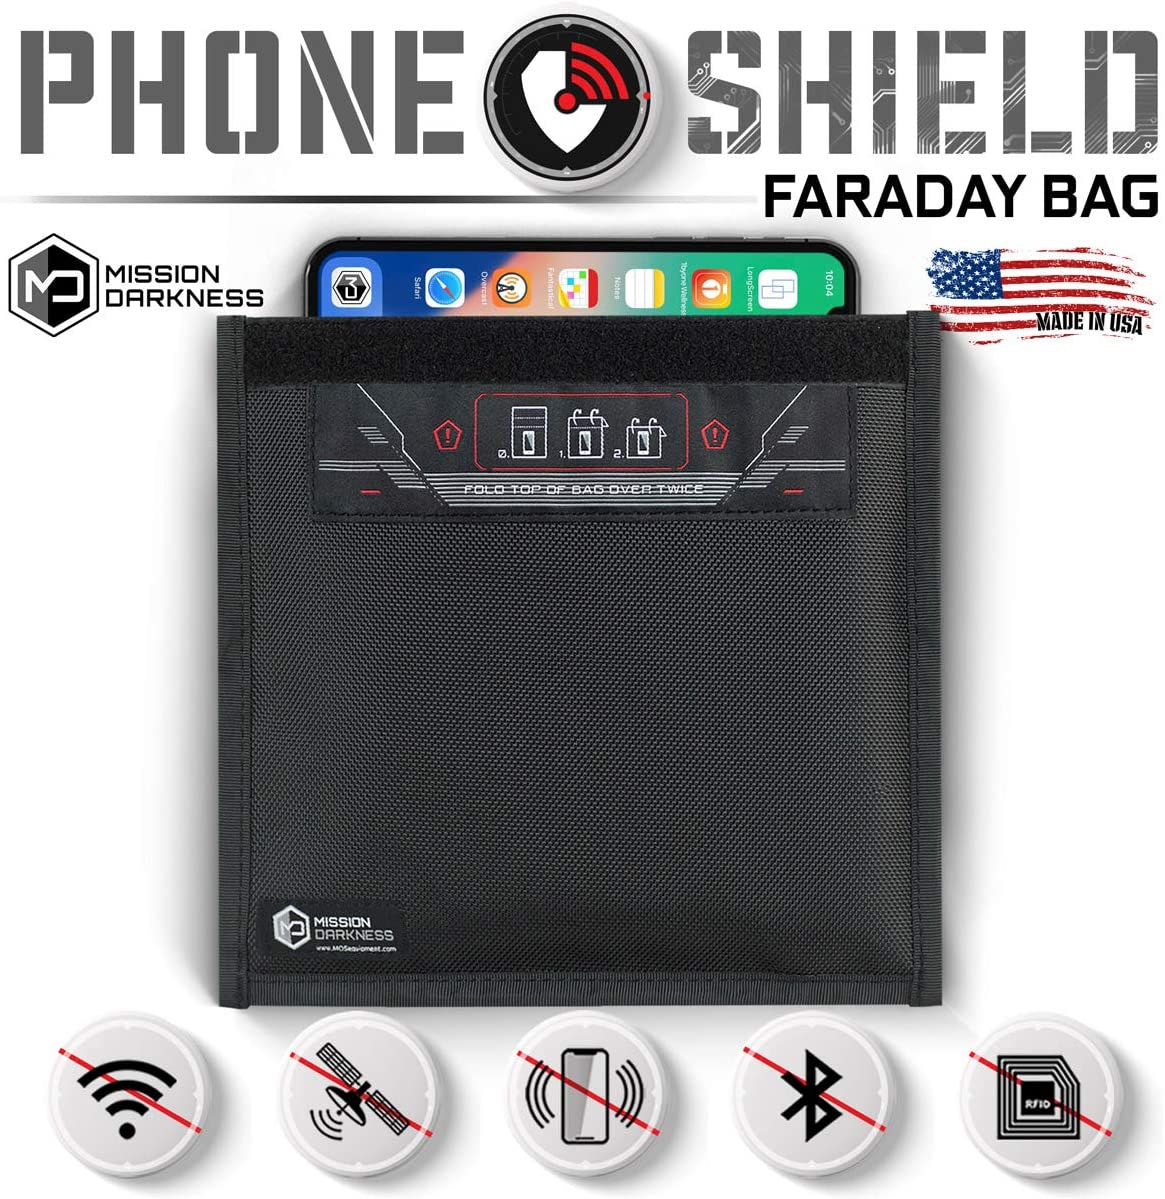 Mission Darkness Non-Window Faraday Bag for Phones - Device Shielding for Law Enforcement, Military, Executive Privacy, Travel & Data Security, Anti-Hacking & Anti-Tracking Assurance